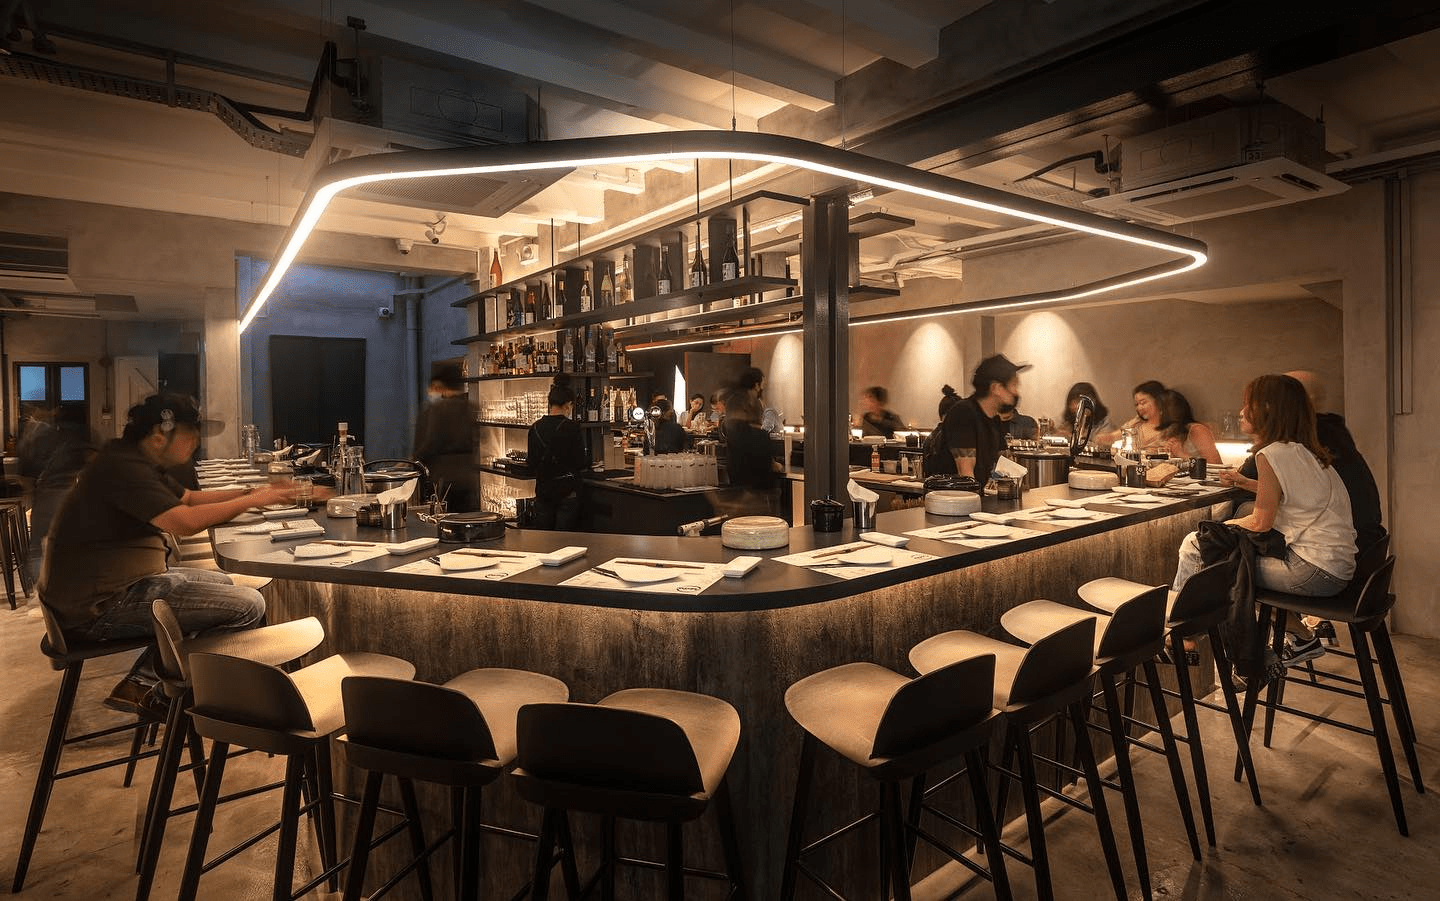 RAPPU - New cafes and Restaurants in December 2020